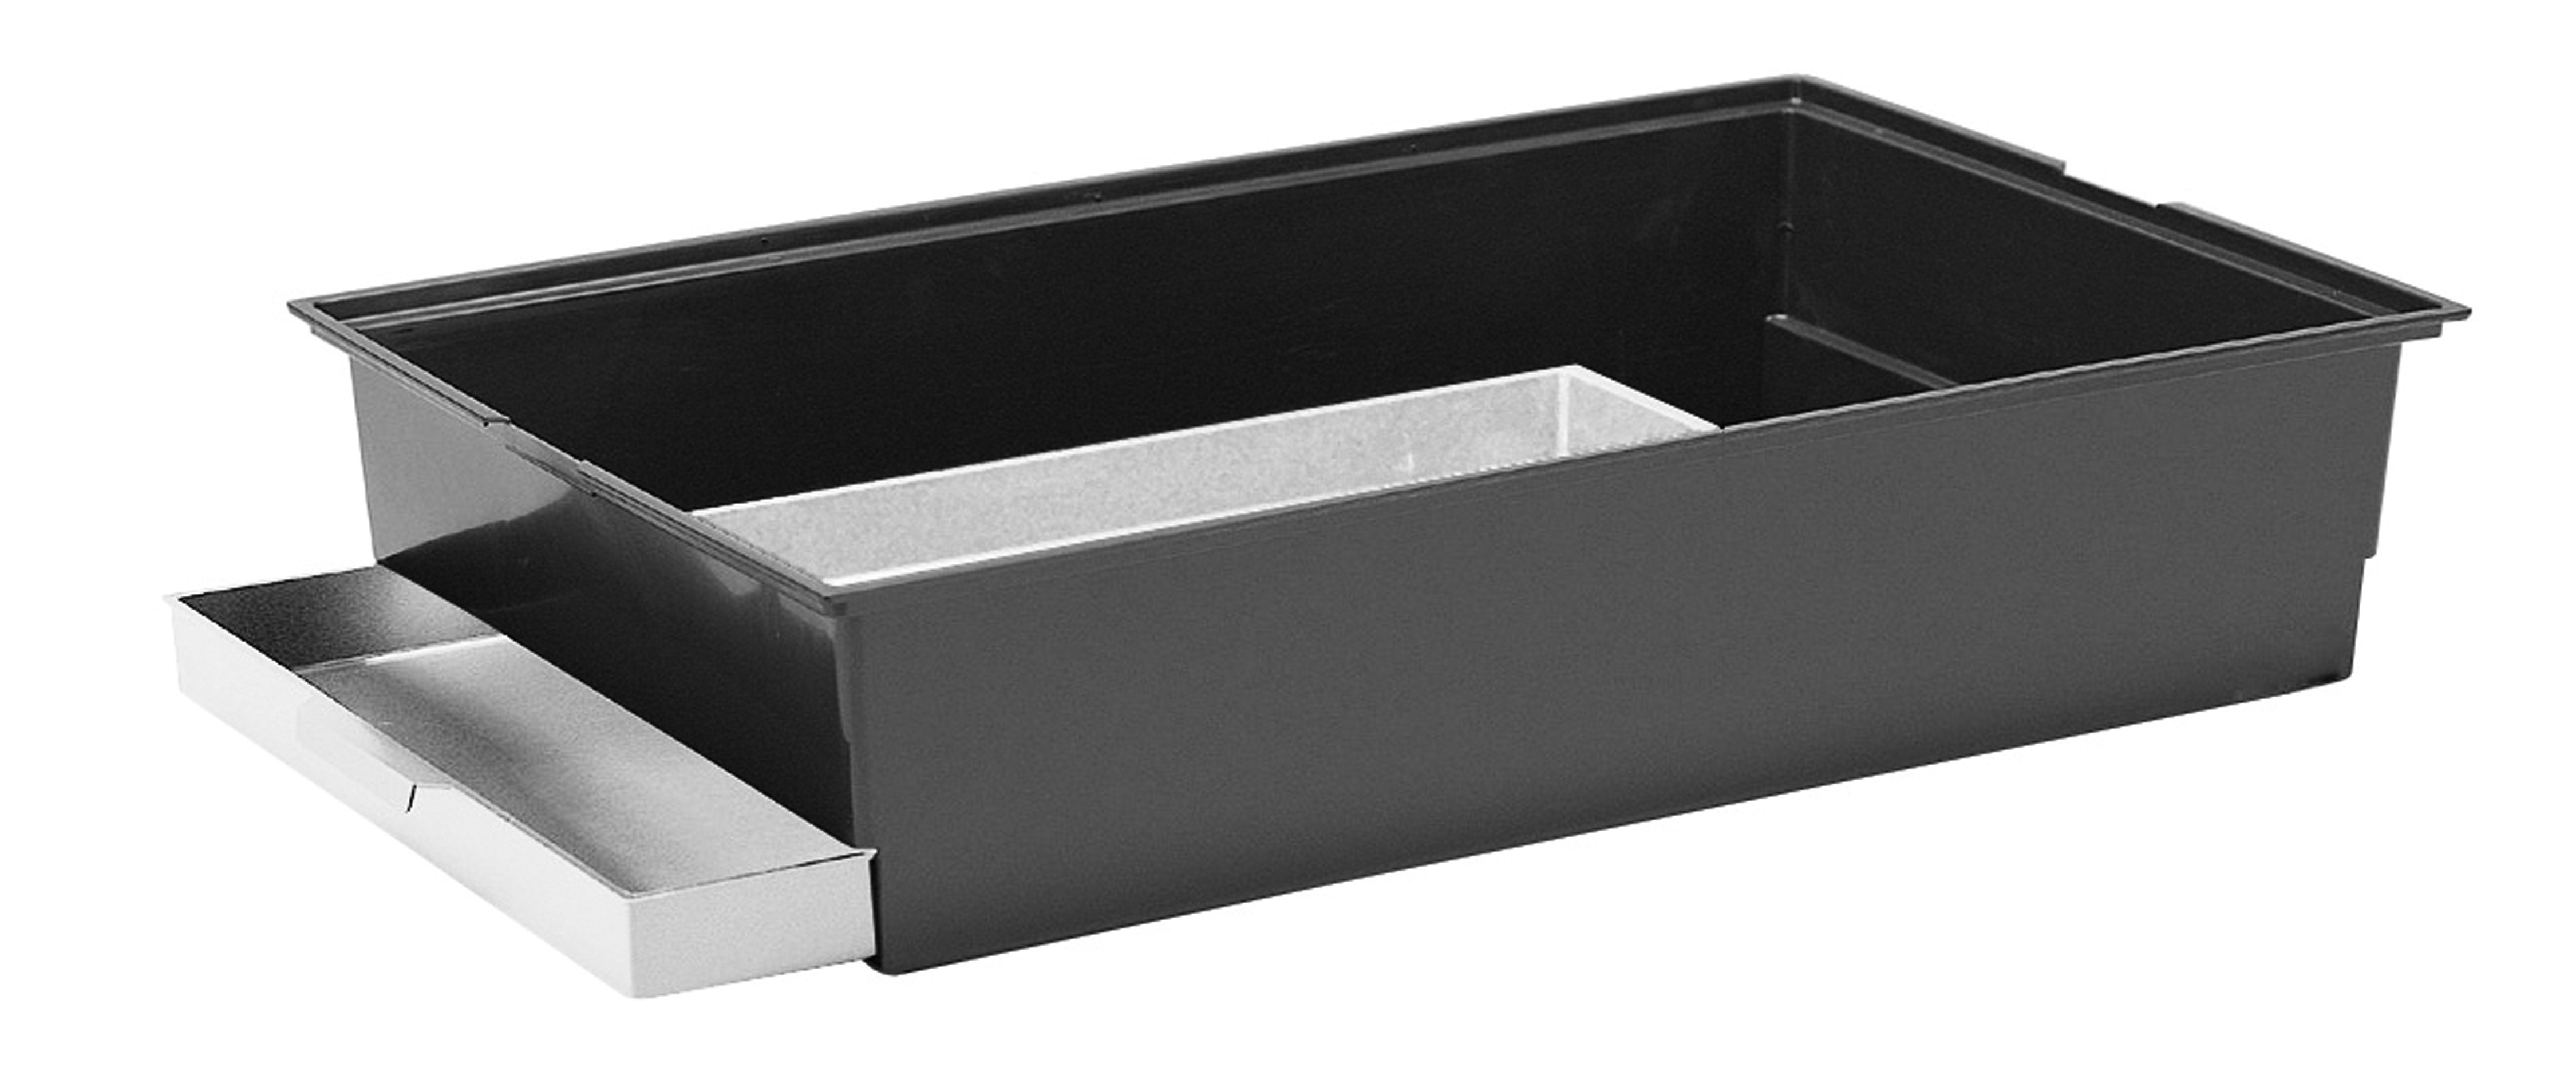 Ferplast M26 Base and Sliding Tray